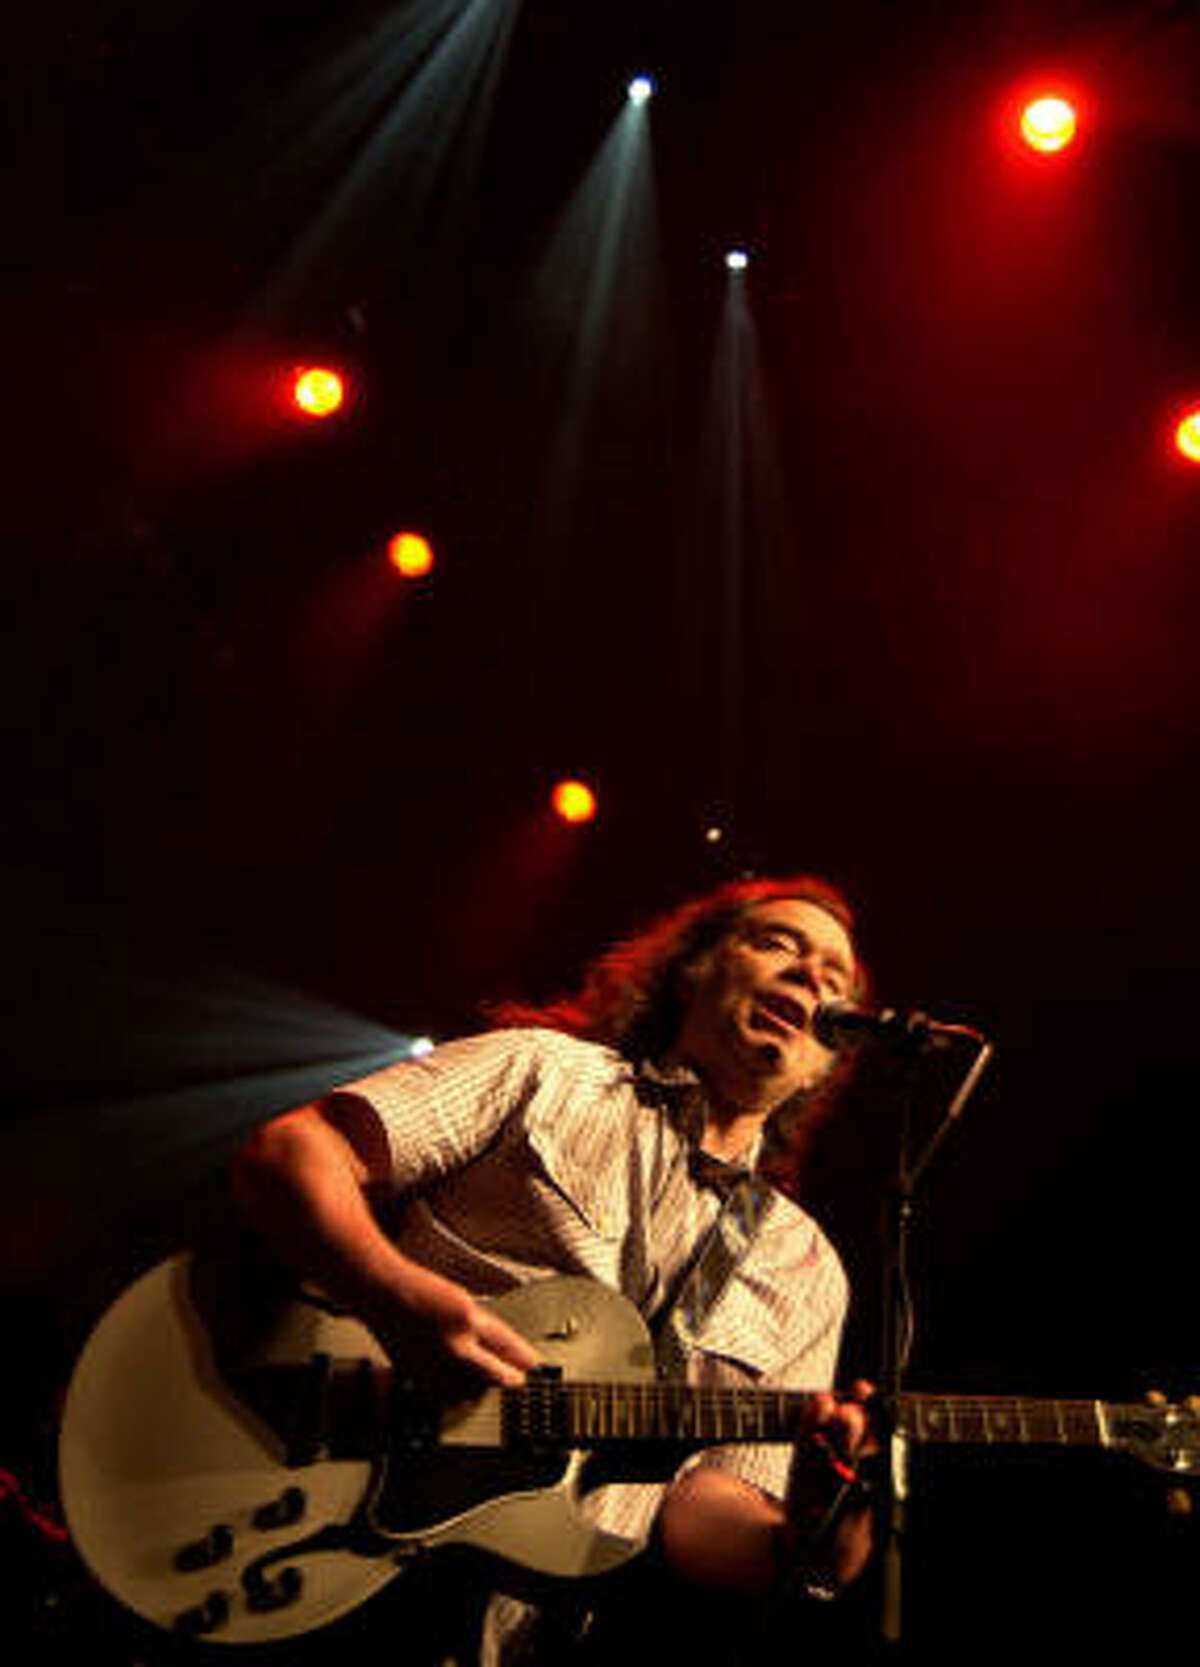 Legendary psychedelic rocker Roky Erickson, who used to play with the 13th Floor Elevators, performs with his band The Explosives during his first show in England, part of the Meltdown Festival in 2007.